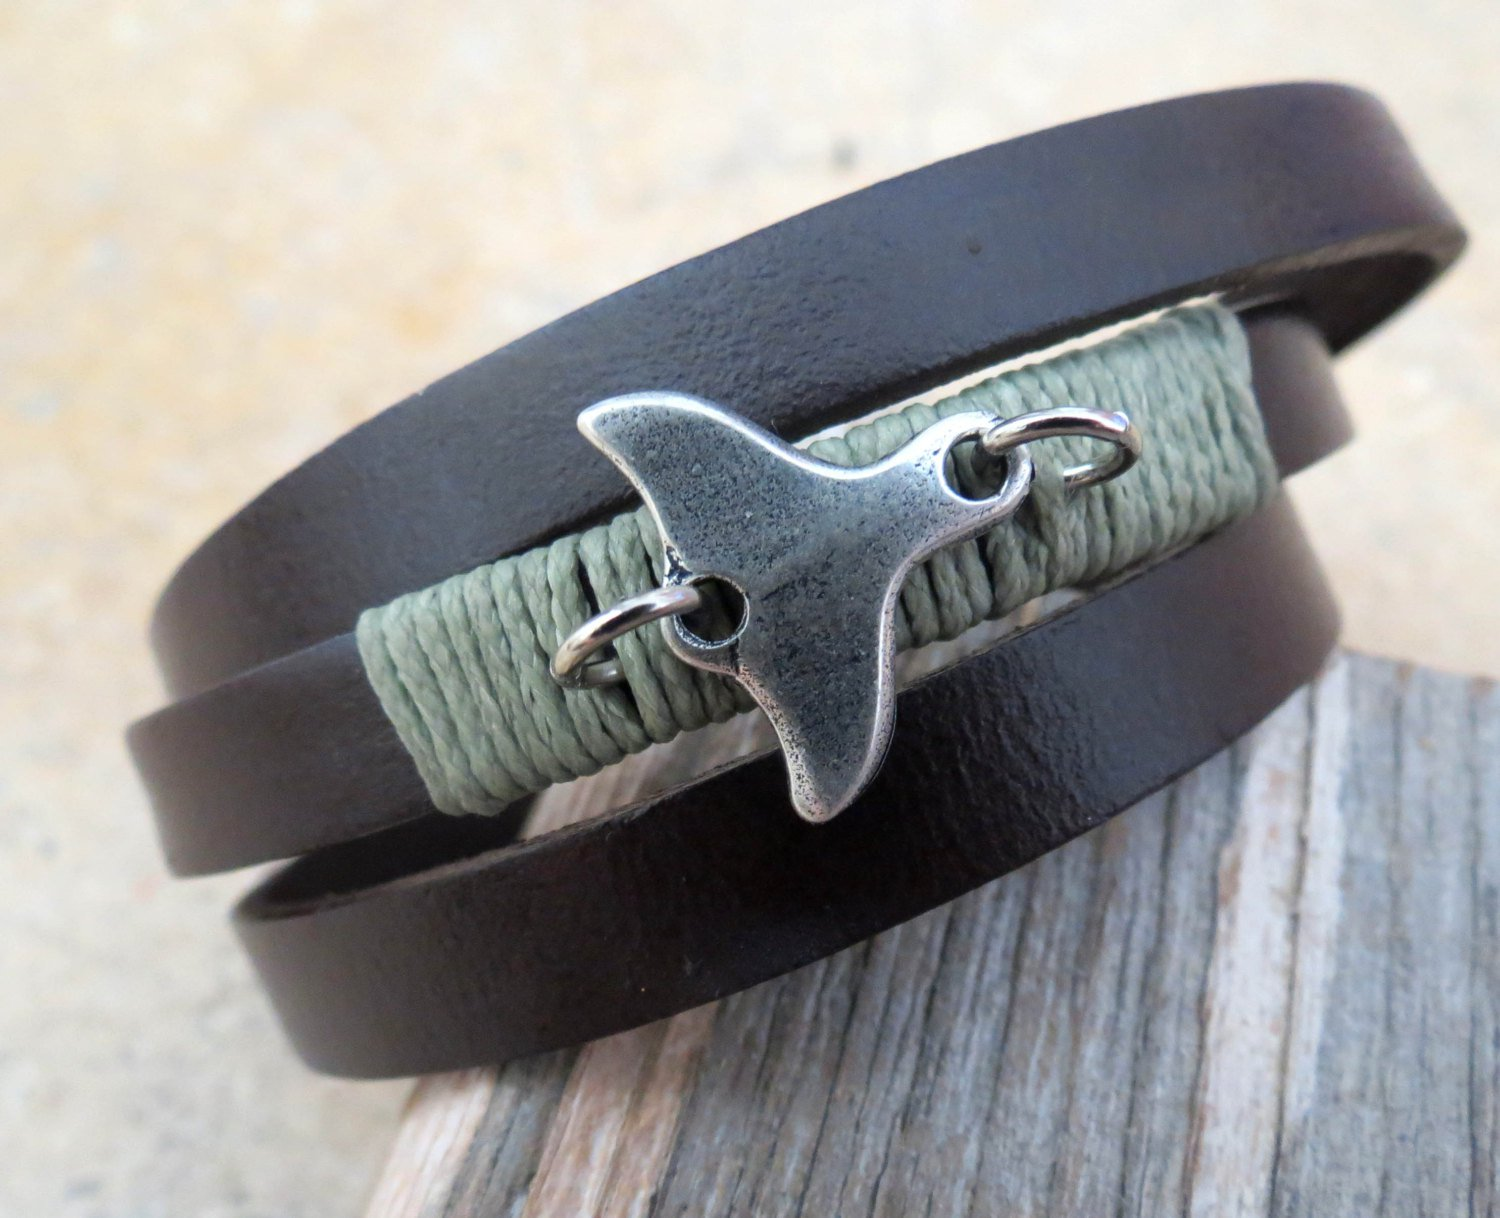 Men's Bracelet - Men's Tail Bracelet - Men's Brown Bracelet - Men's Leather Bracelet